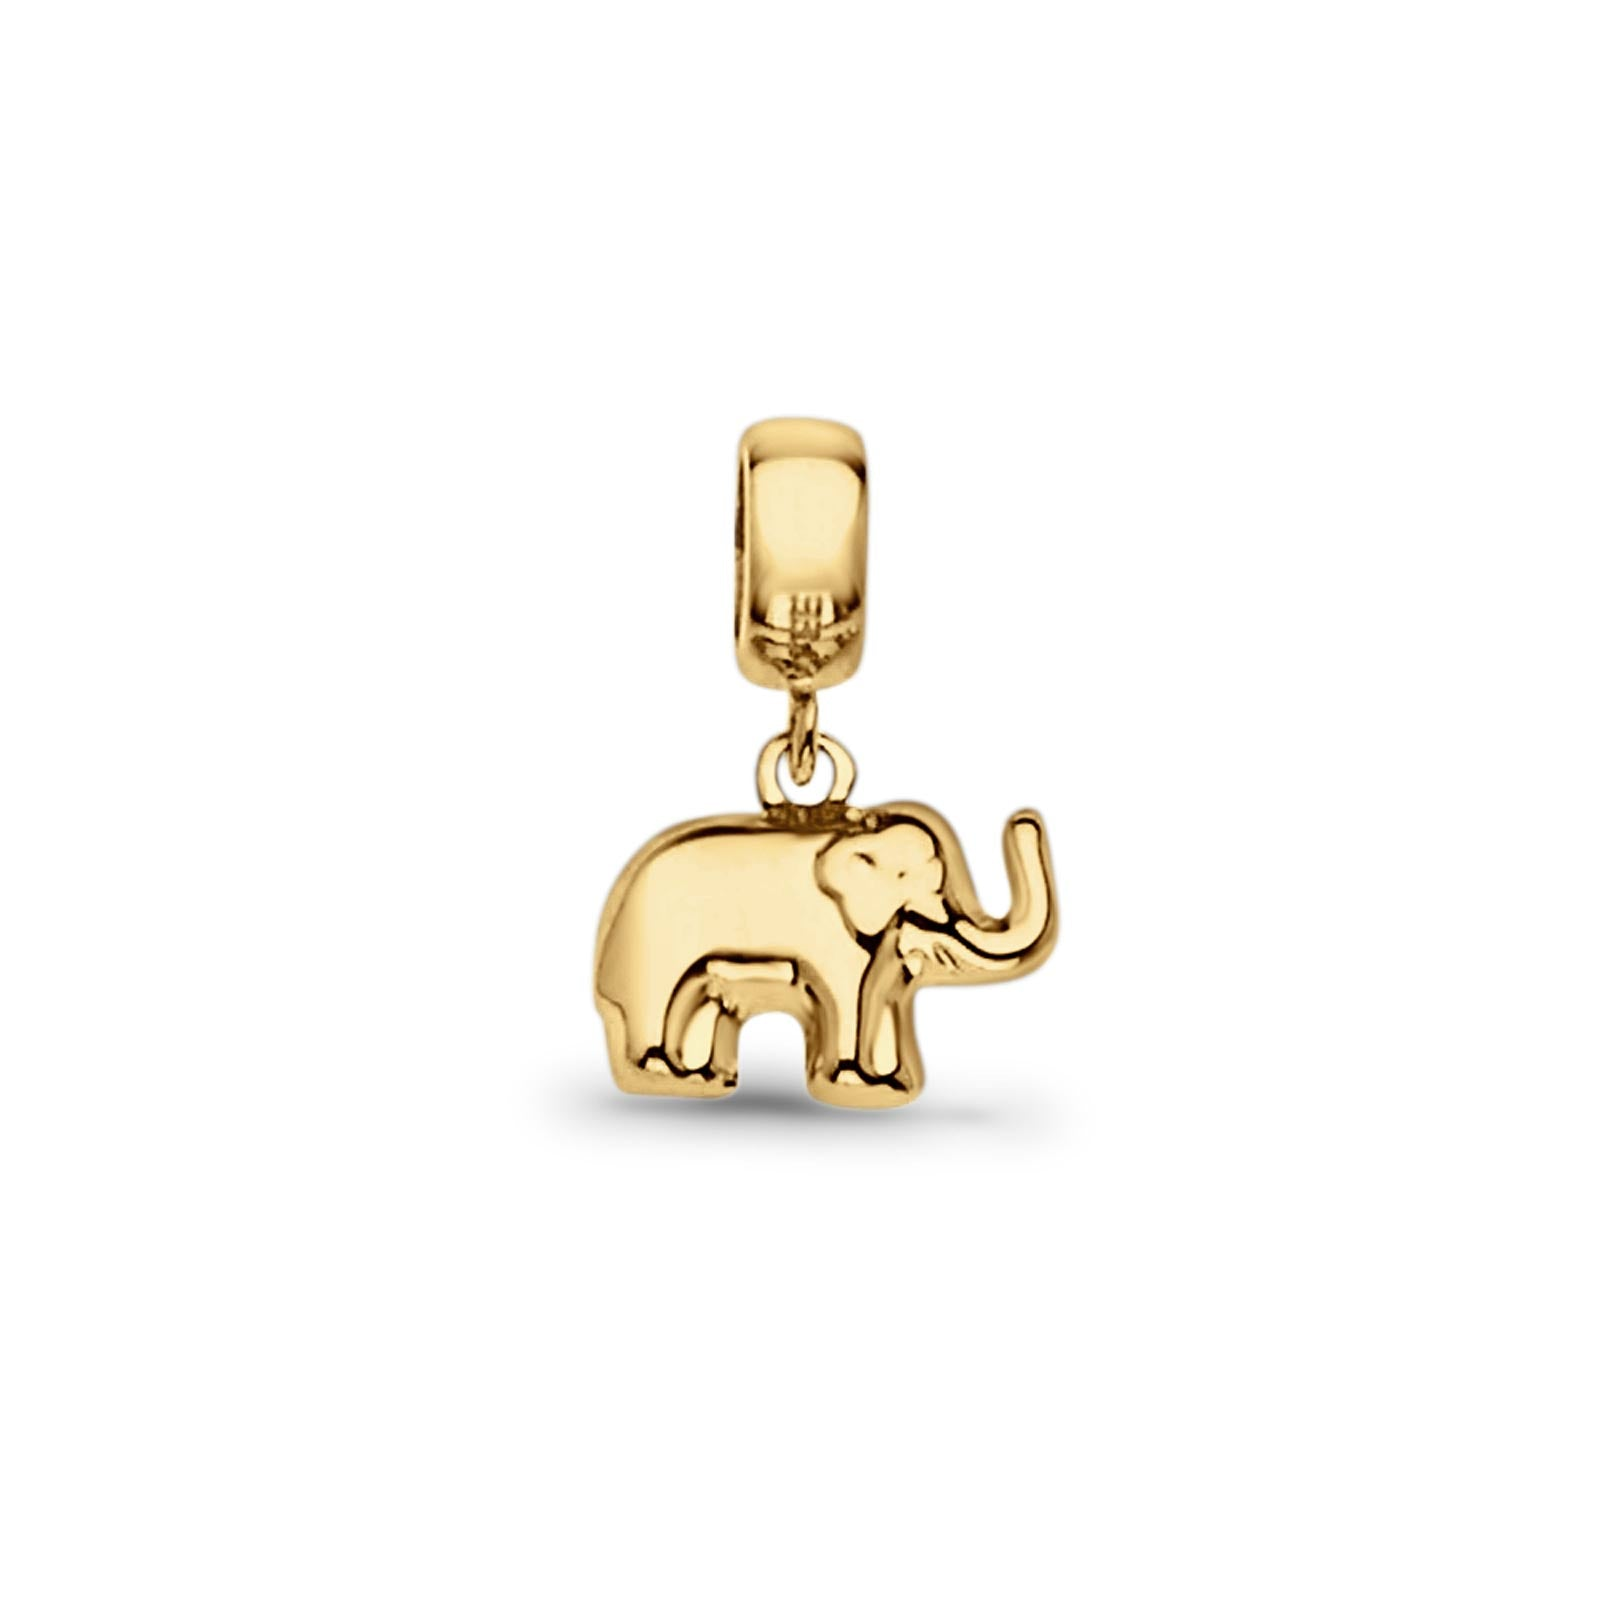 Real Elephant Charm Pendant 14K Yellow Gold 17mmX11mm 1gm